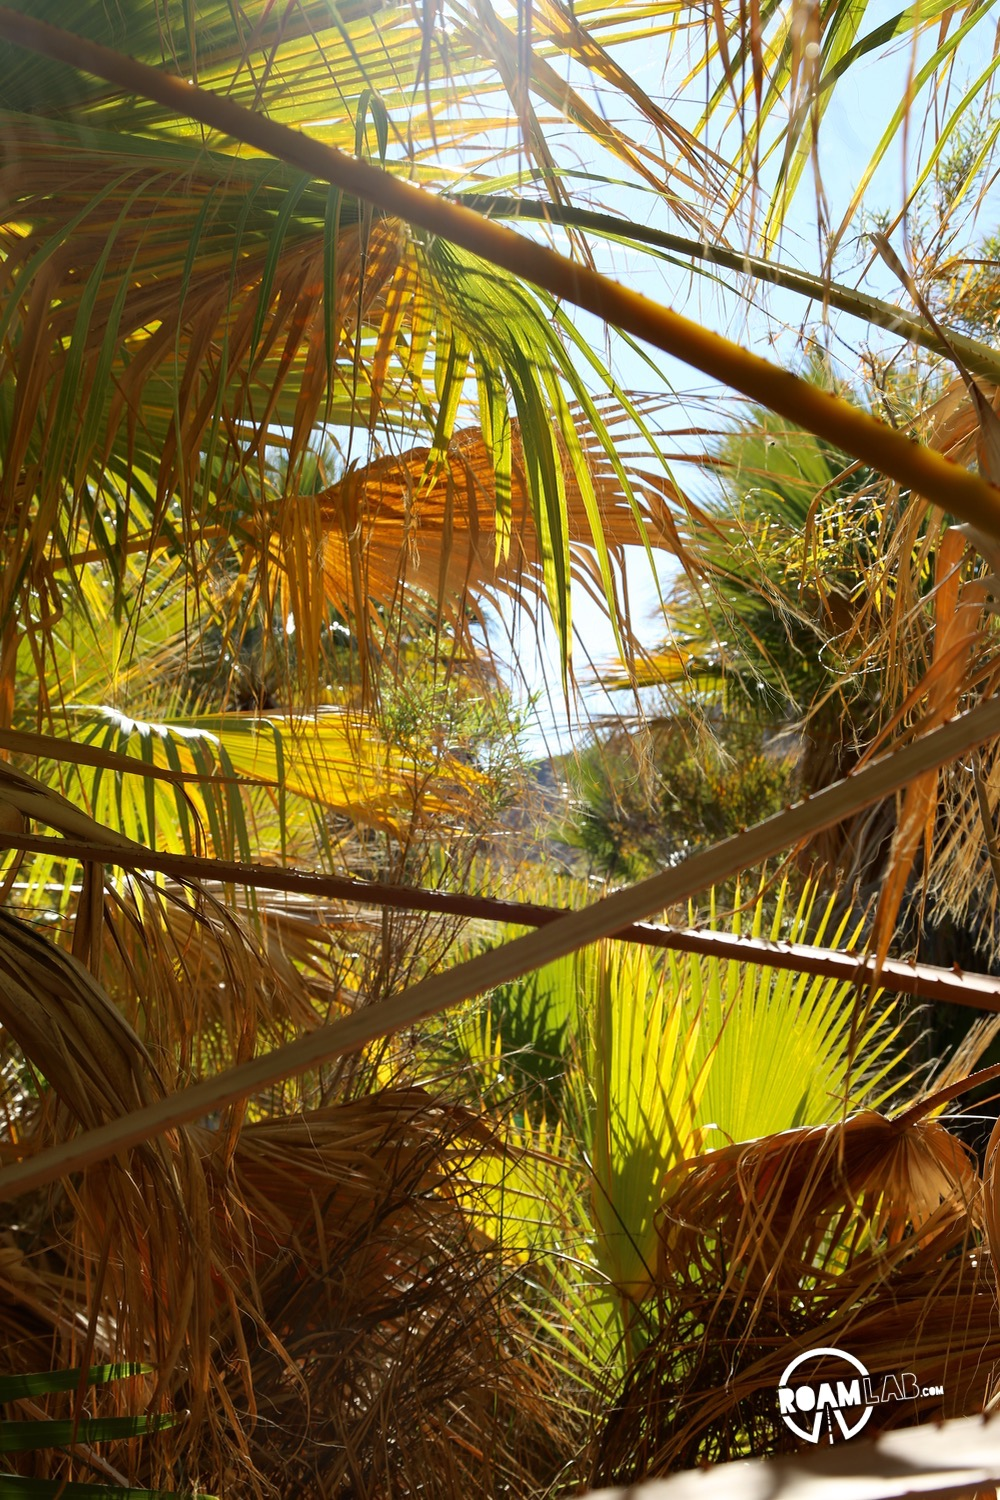 In the middle of the California desert is the Thousand Palms Oasis.